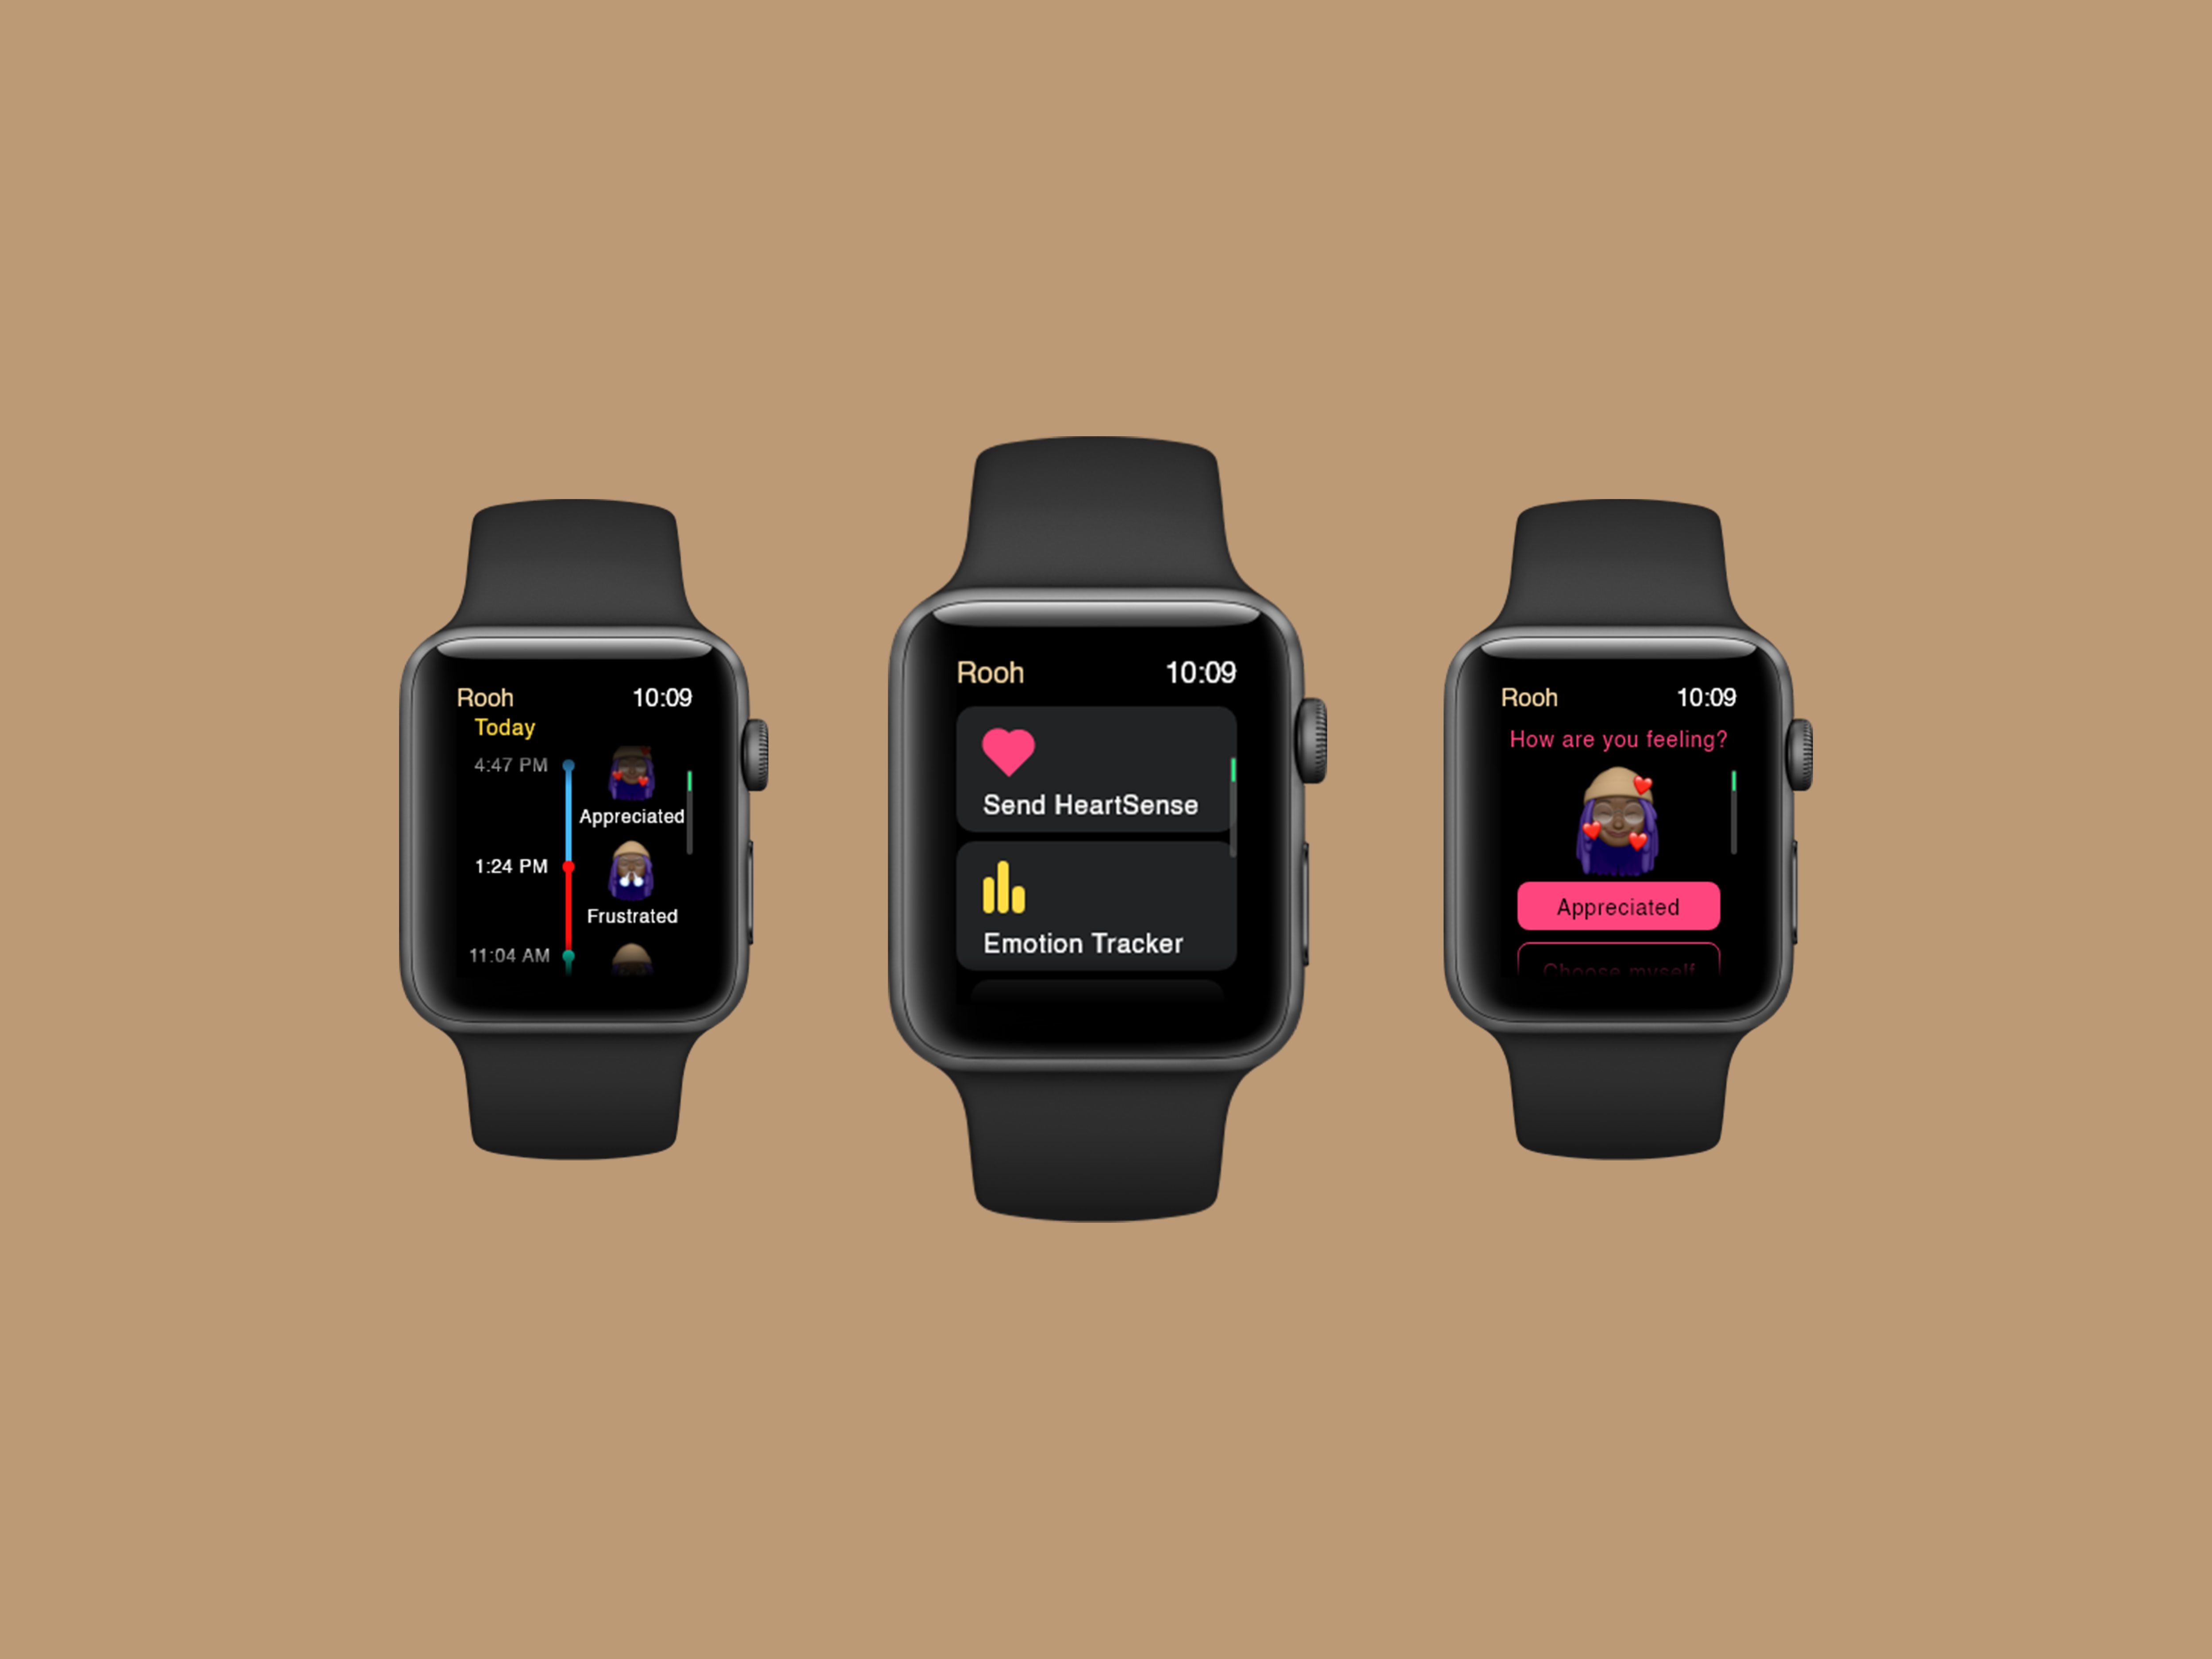 Three watch screens displaying different sections of Rooh app